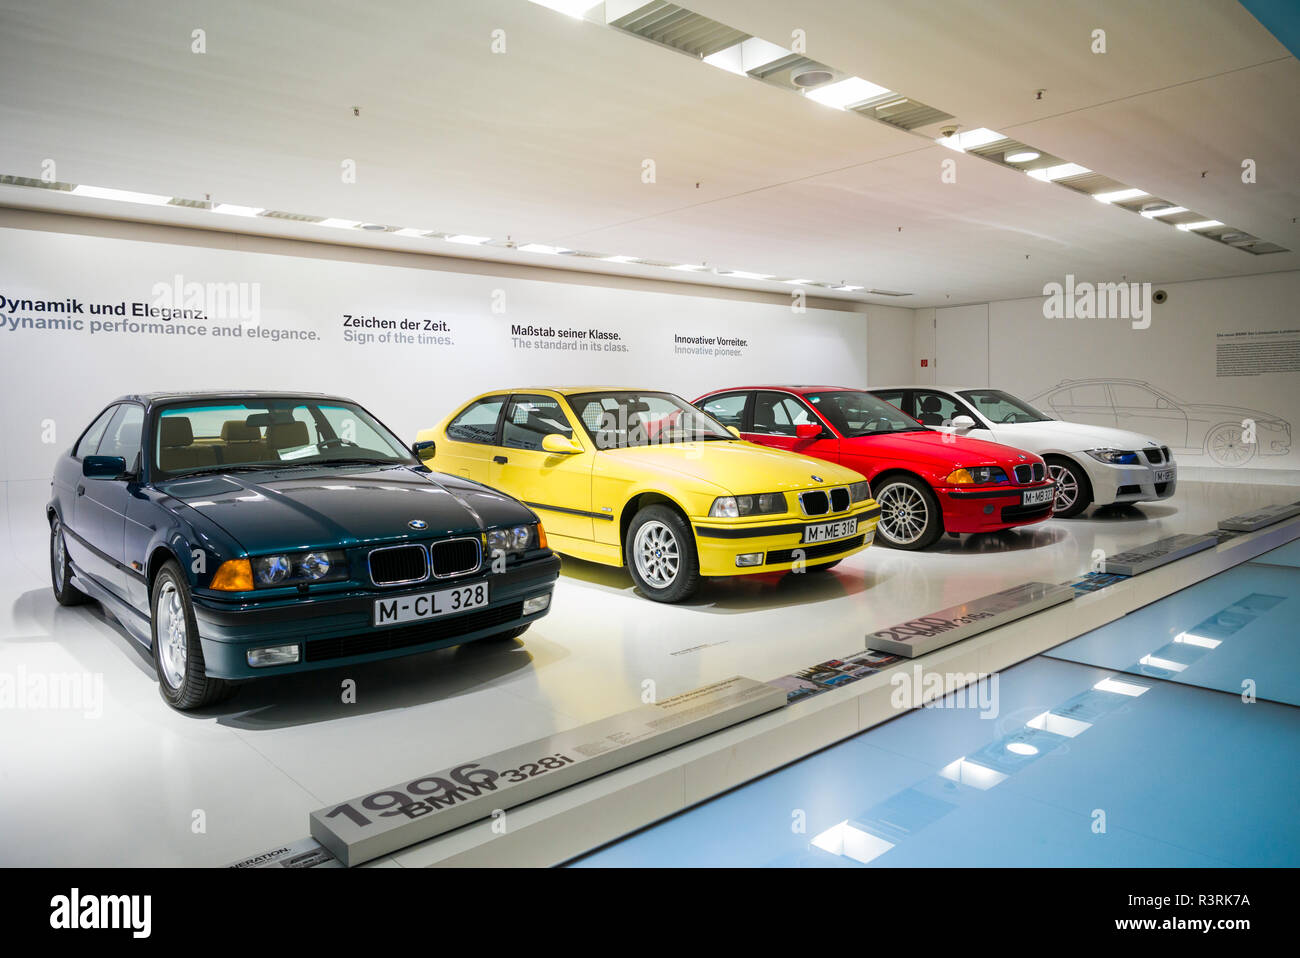 Museo Bmw.Germany Bavaria Munich Bmw Museum Bmw 3 Series Cars Editorial